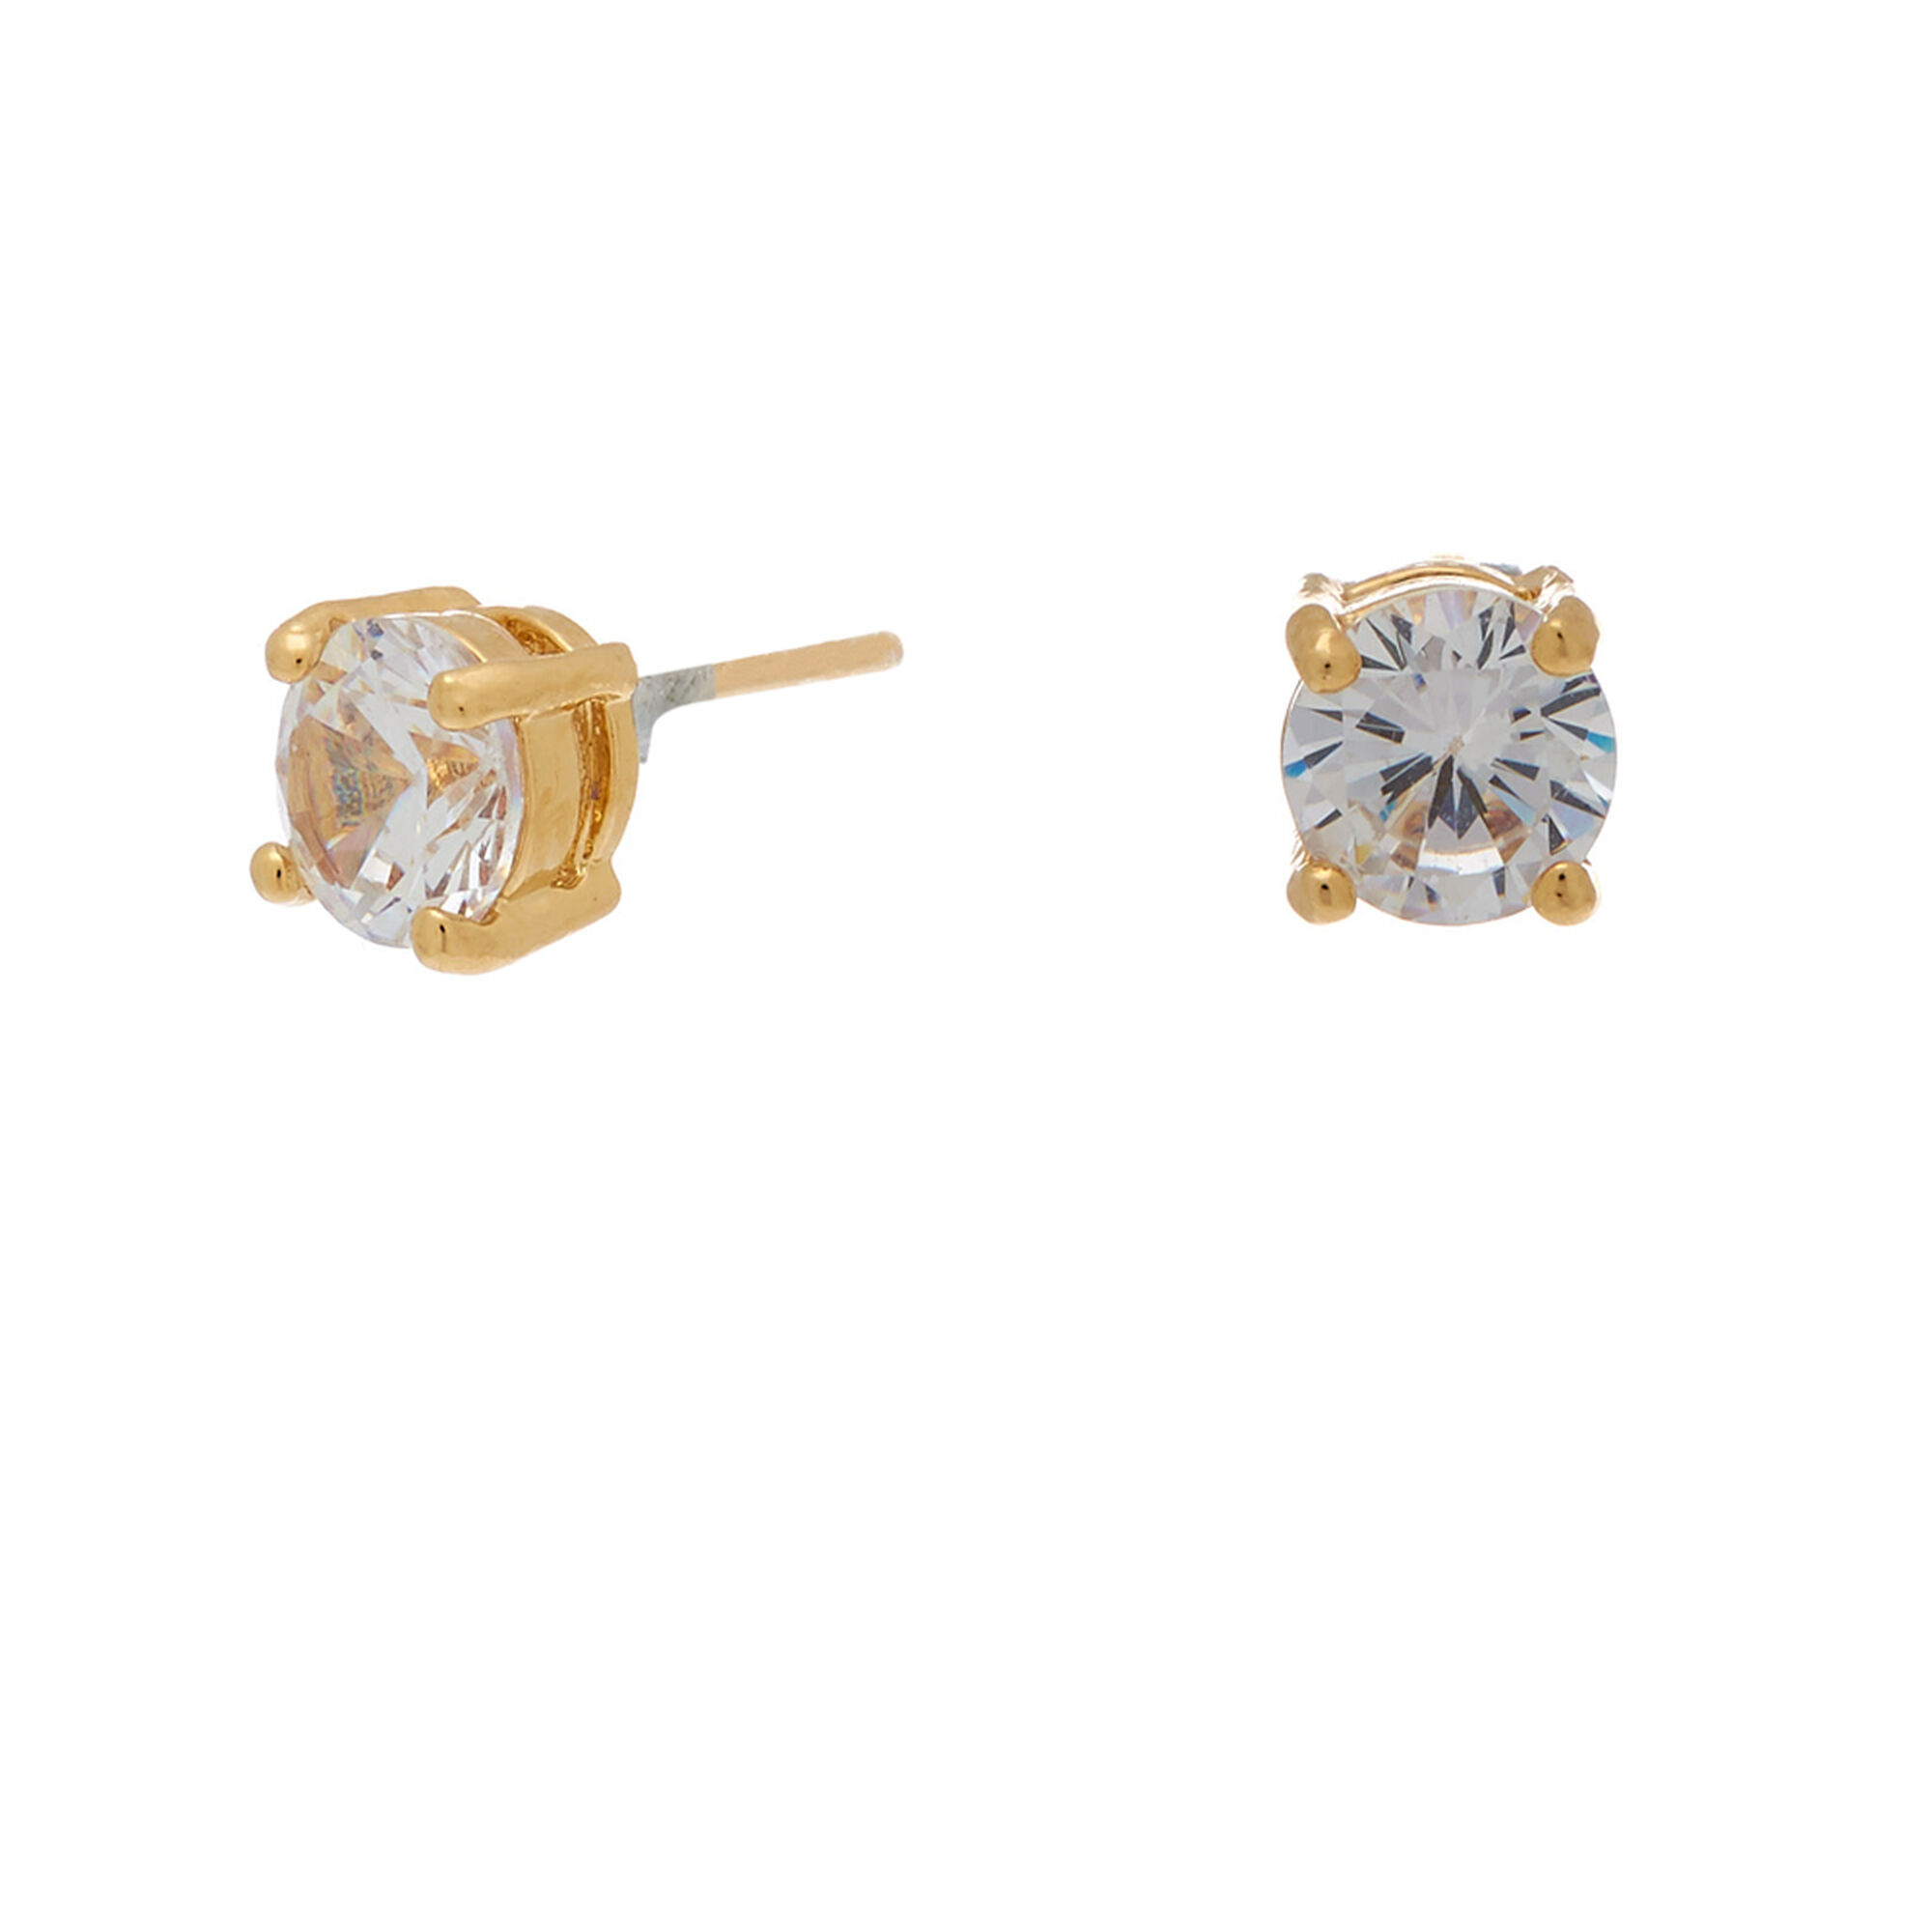 18kt Gold Plated 6mm Cubic Zirconia Round Stud Earrings